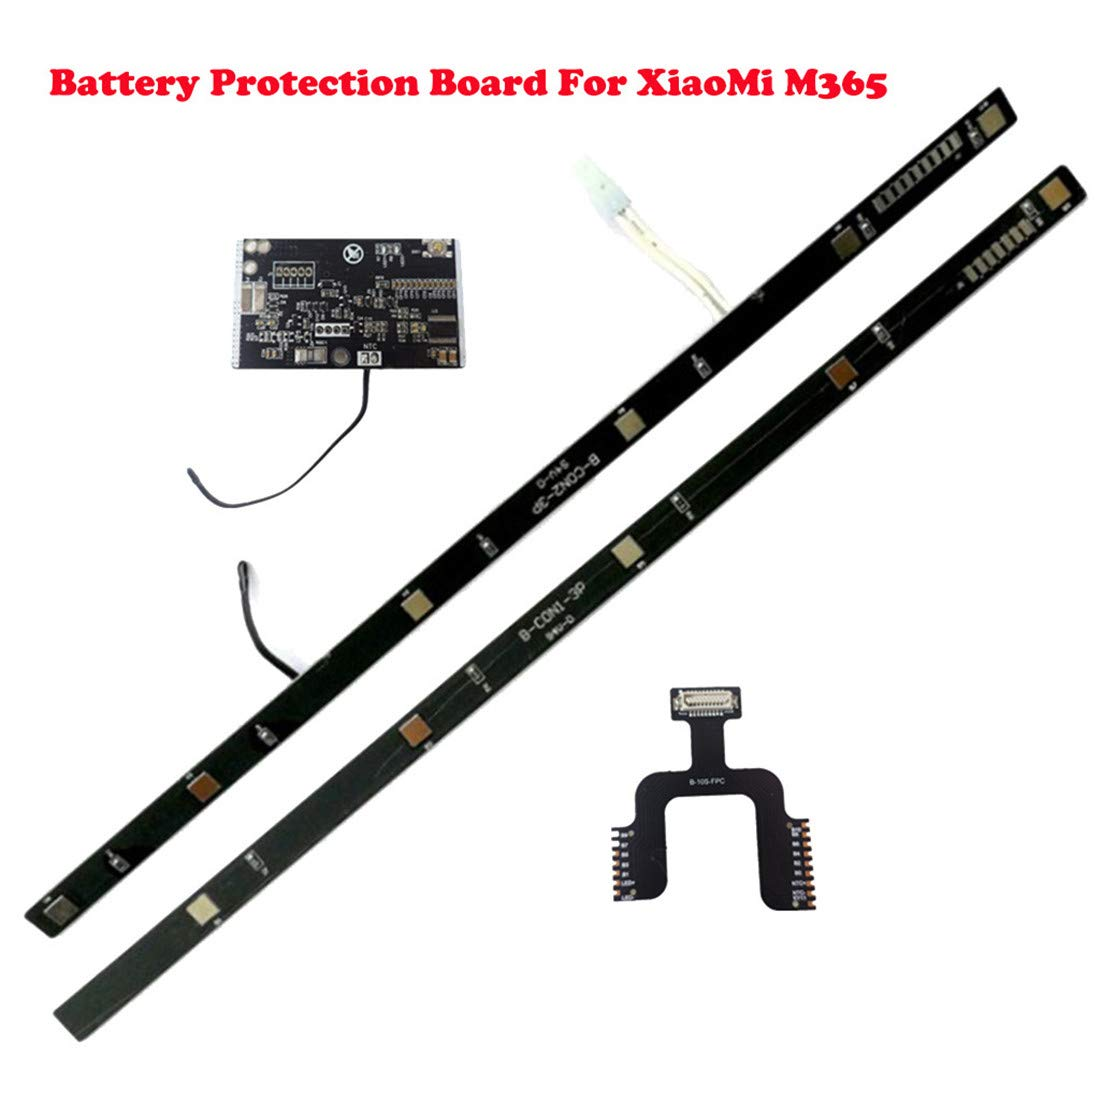 Freeby Compatible with Xiaomi M365 Electric Scooter Battery Protection Board BMS Circuit Board (Black) by Freeby